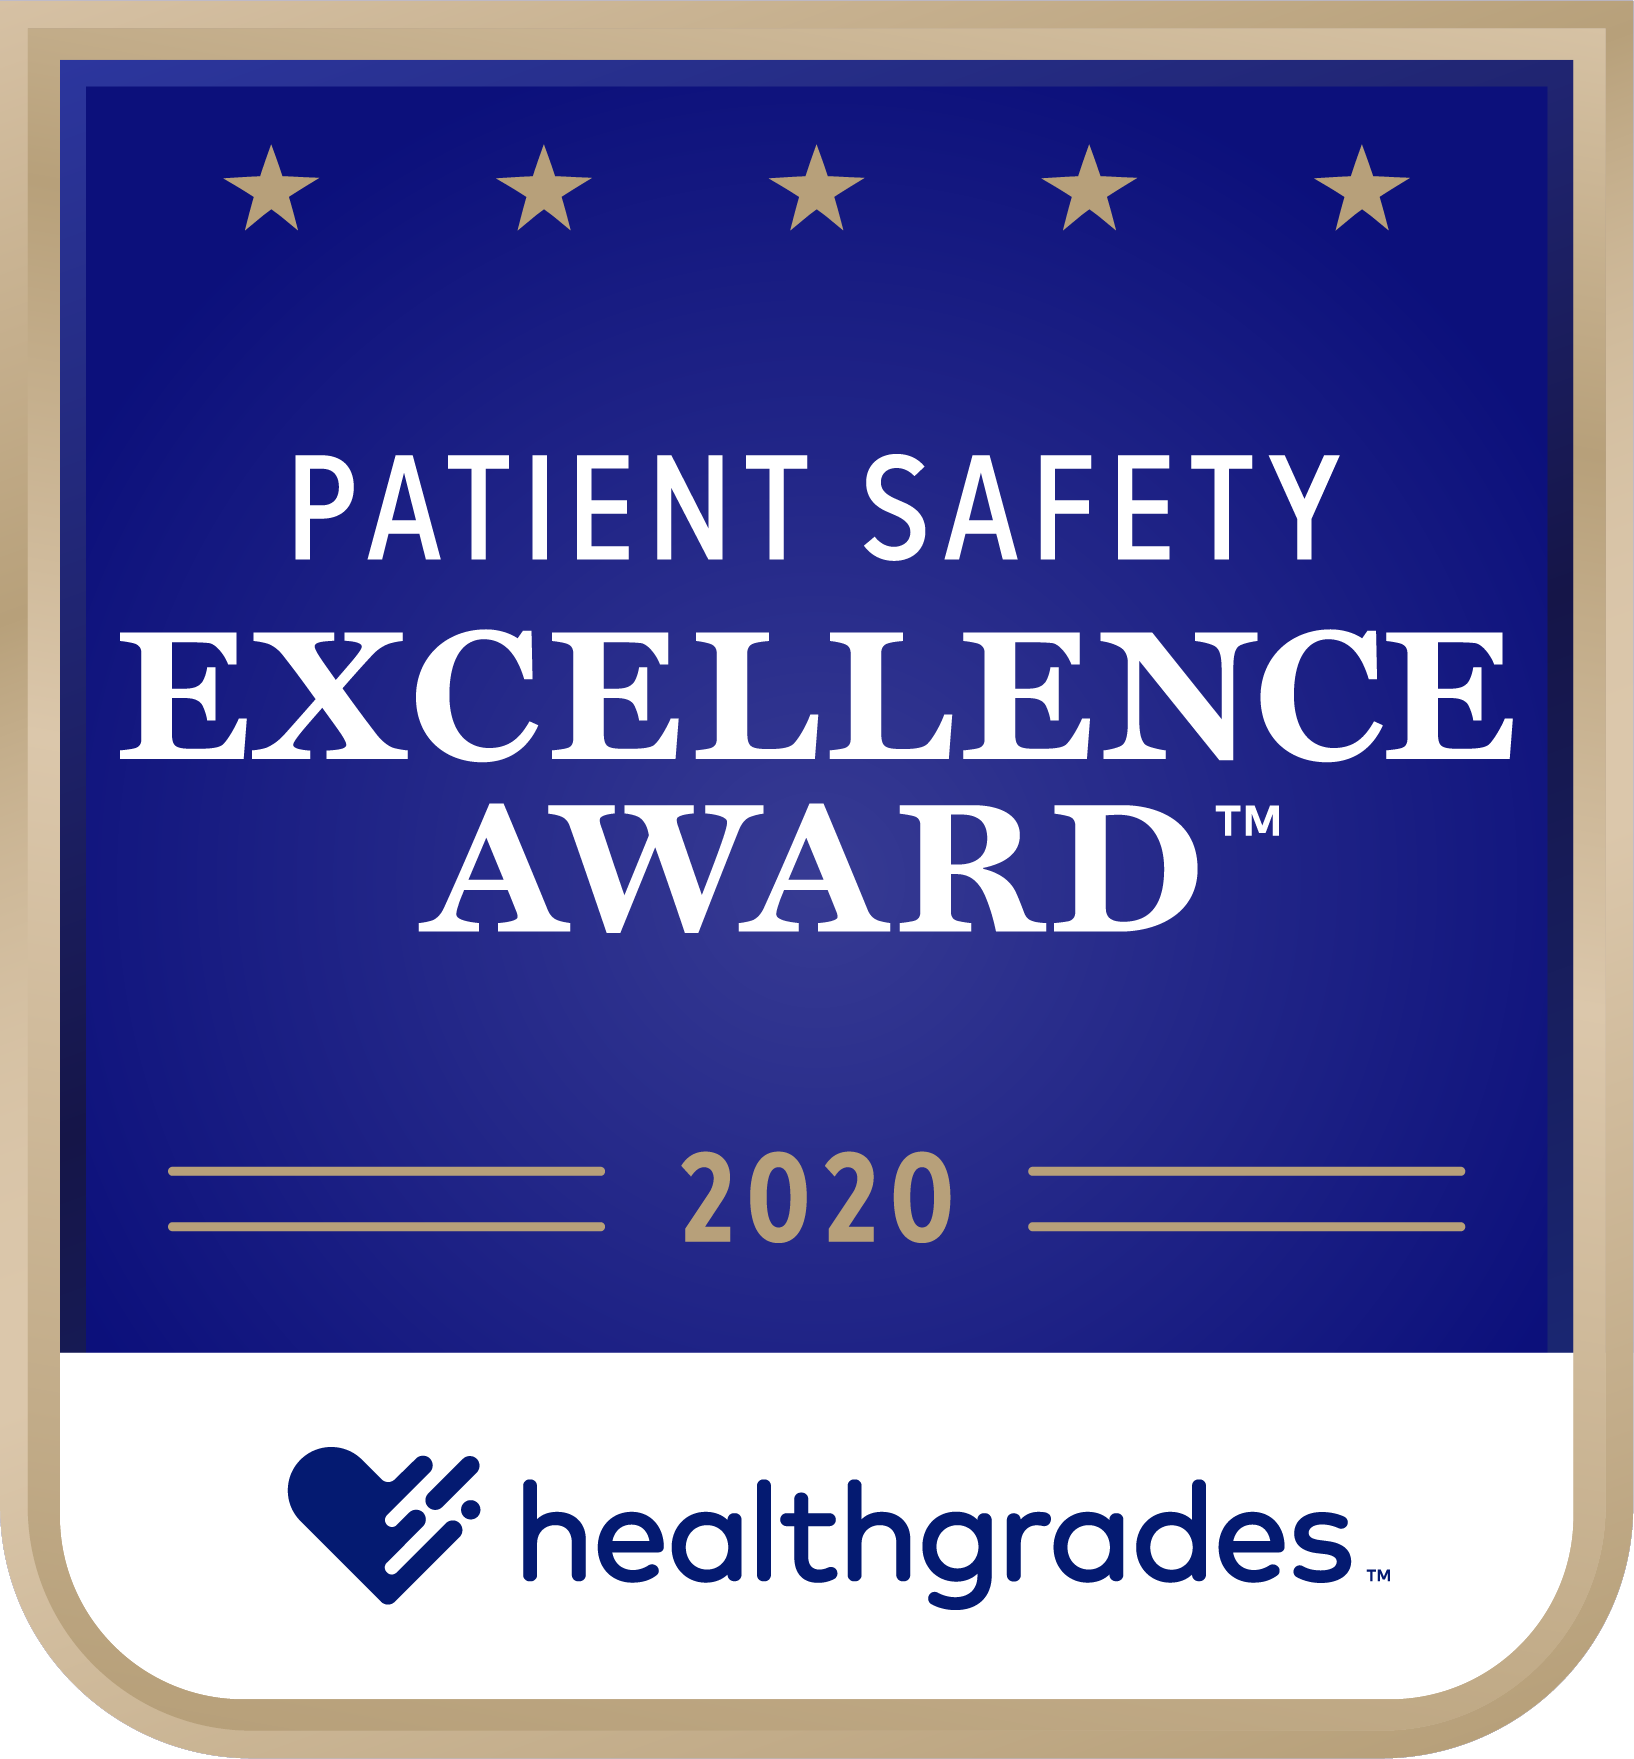 Patient Safety Award 2020